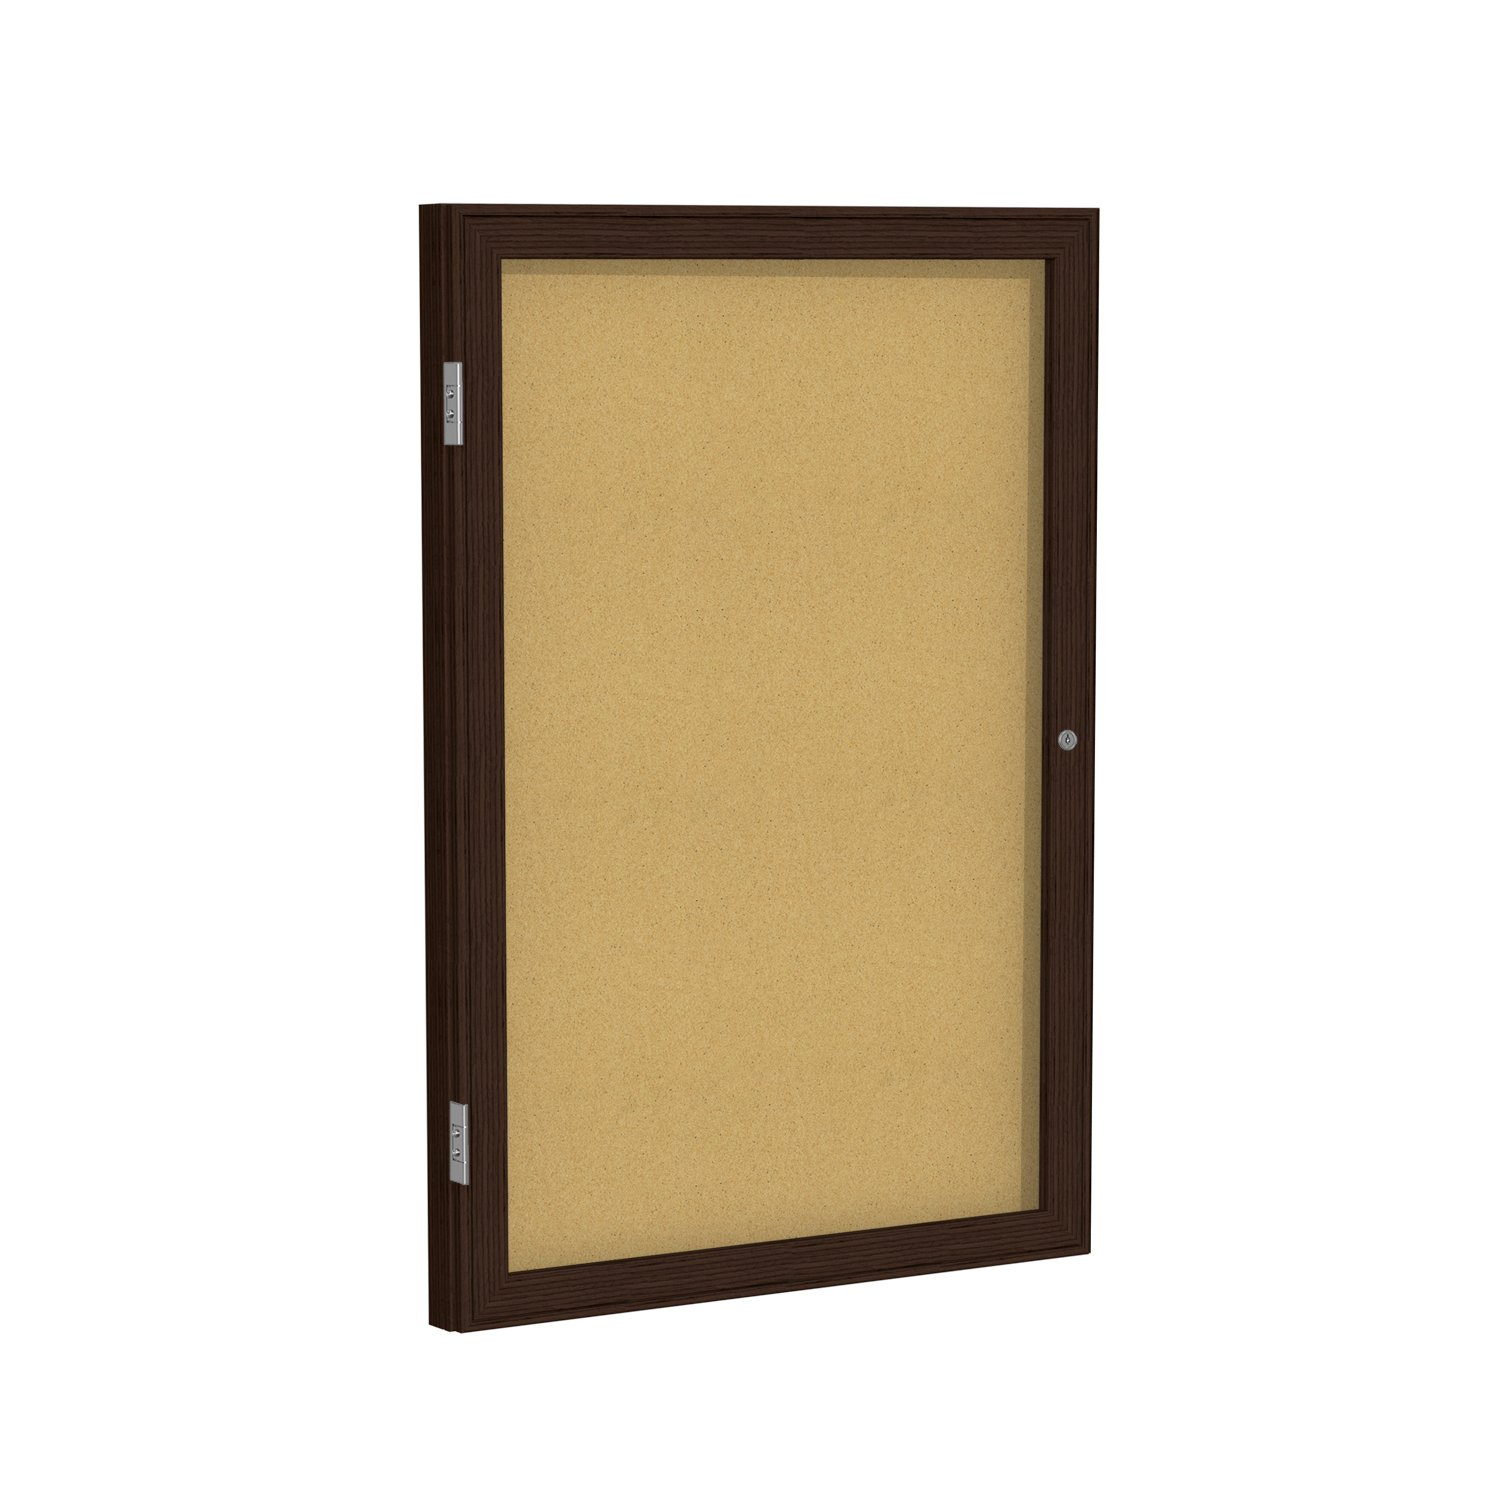 Case of 8, 36''x24'' 1-Dr Wood Frame Walnut Finish Enclosed Bulletin Board - Natural Cork